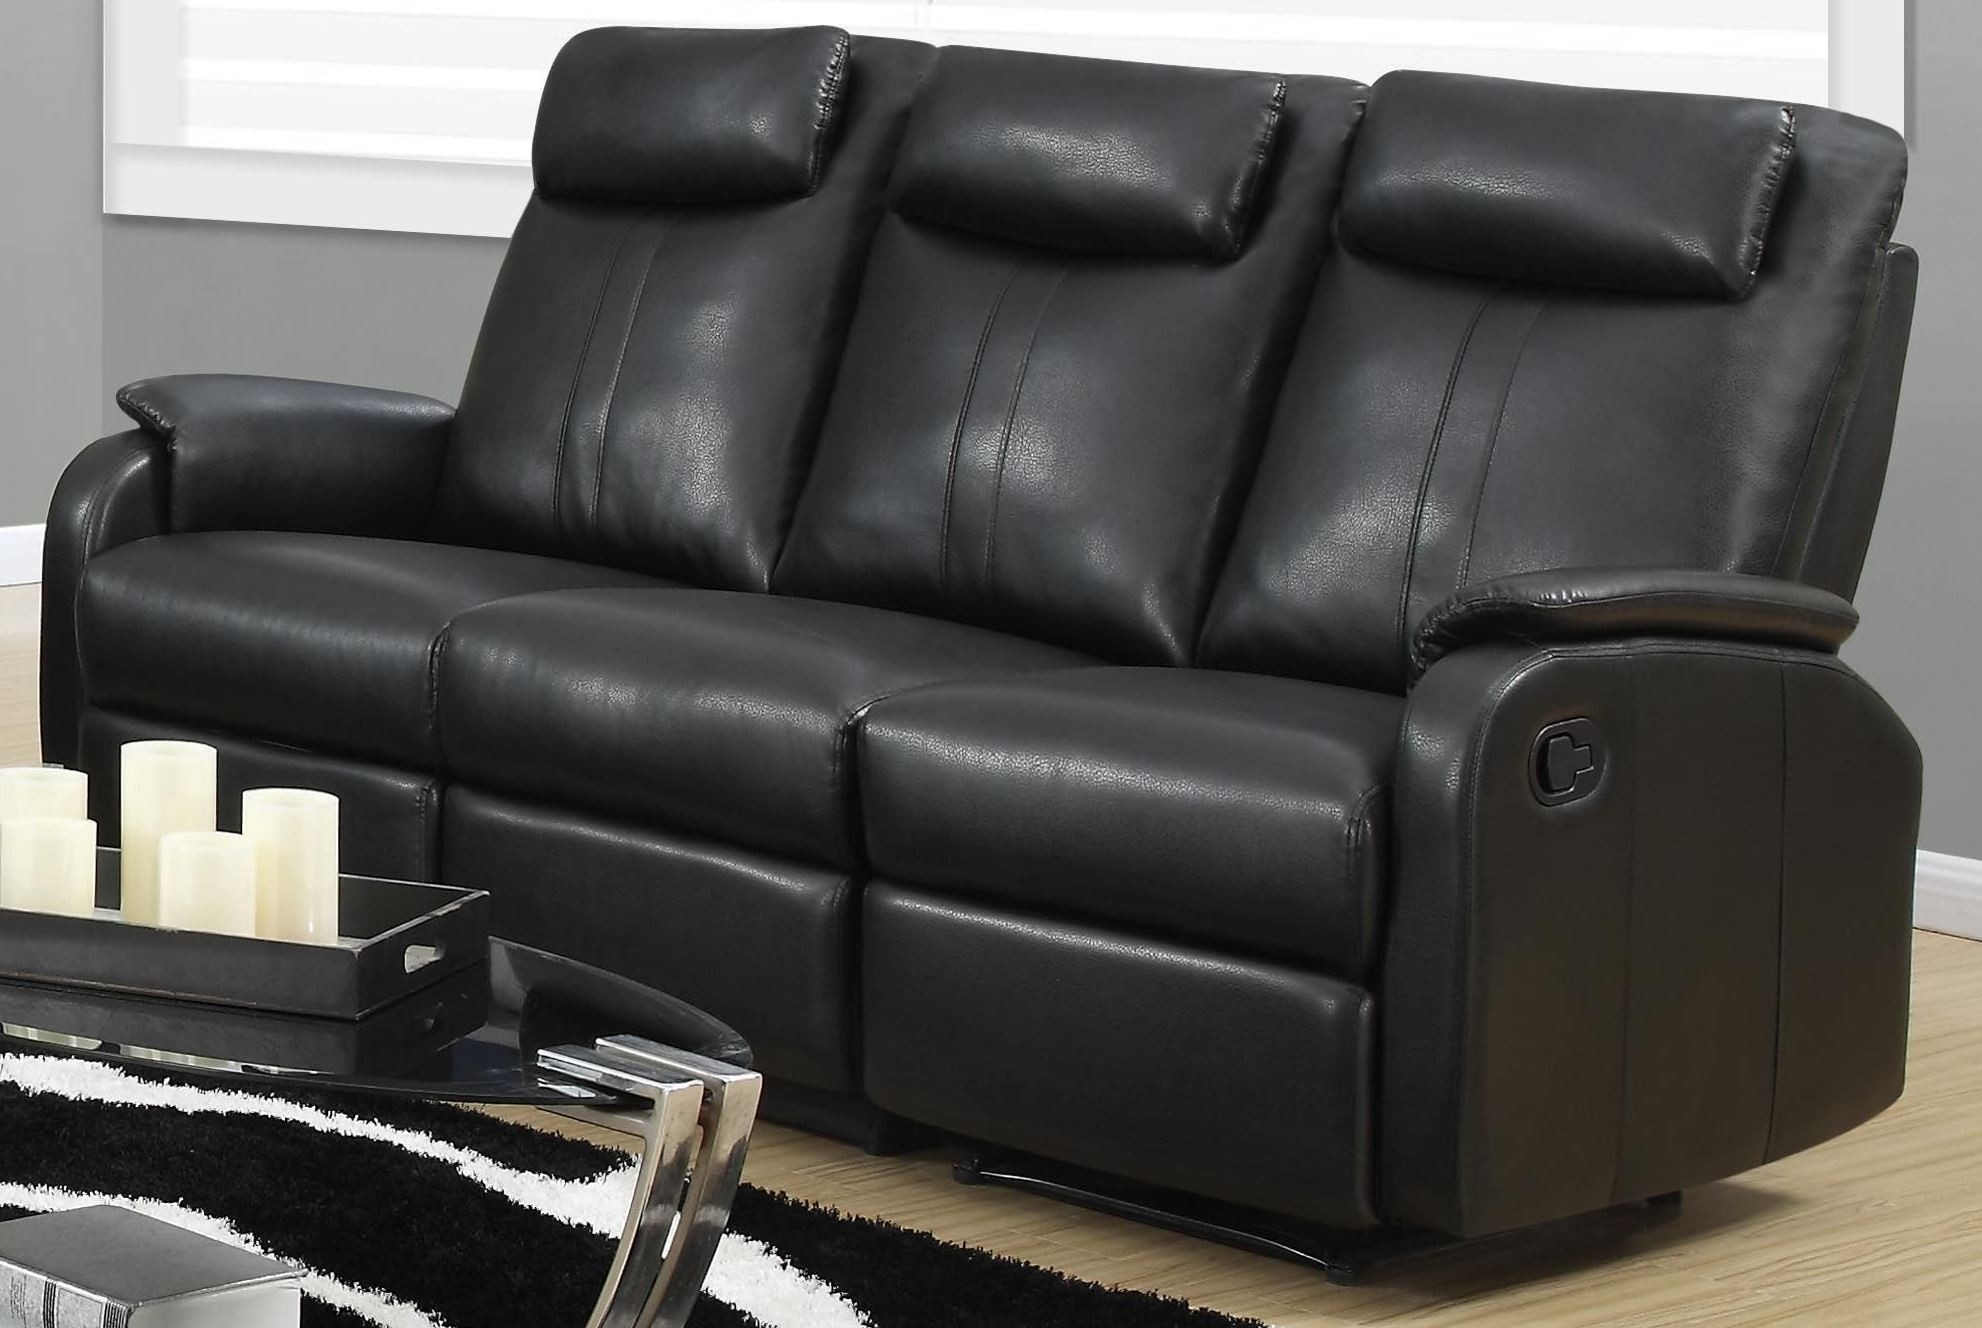 81bk 3 Black Bonded Leather Reclining Sofa 81bk 3 Monarch